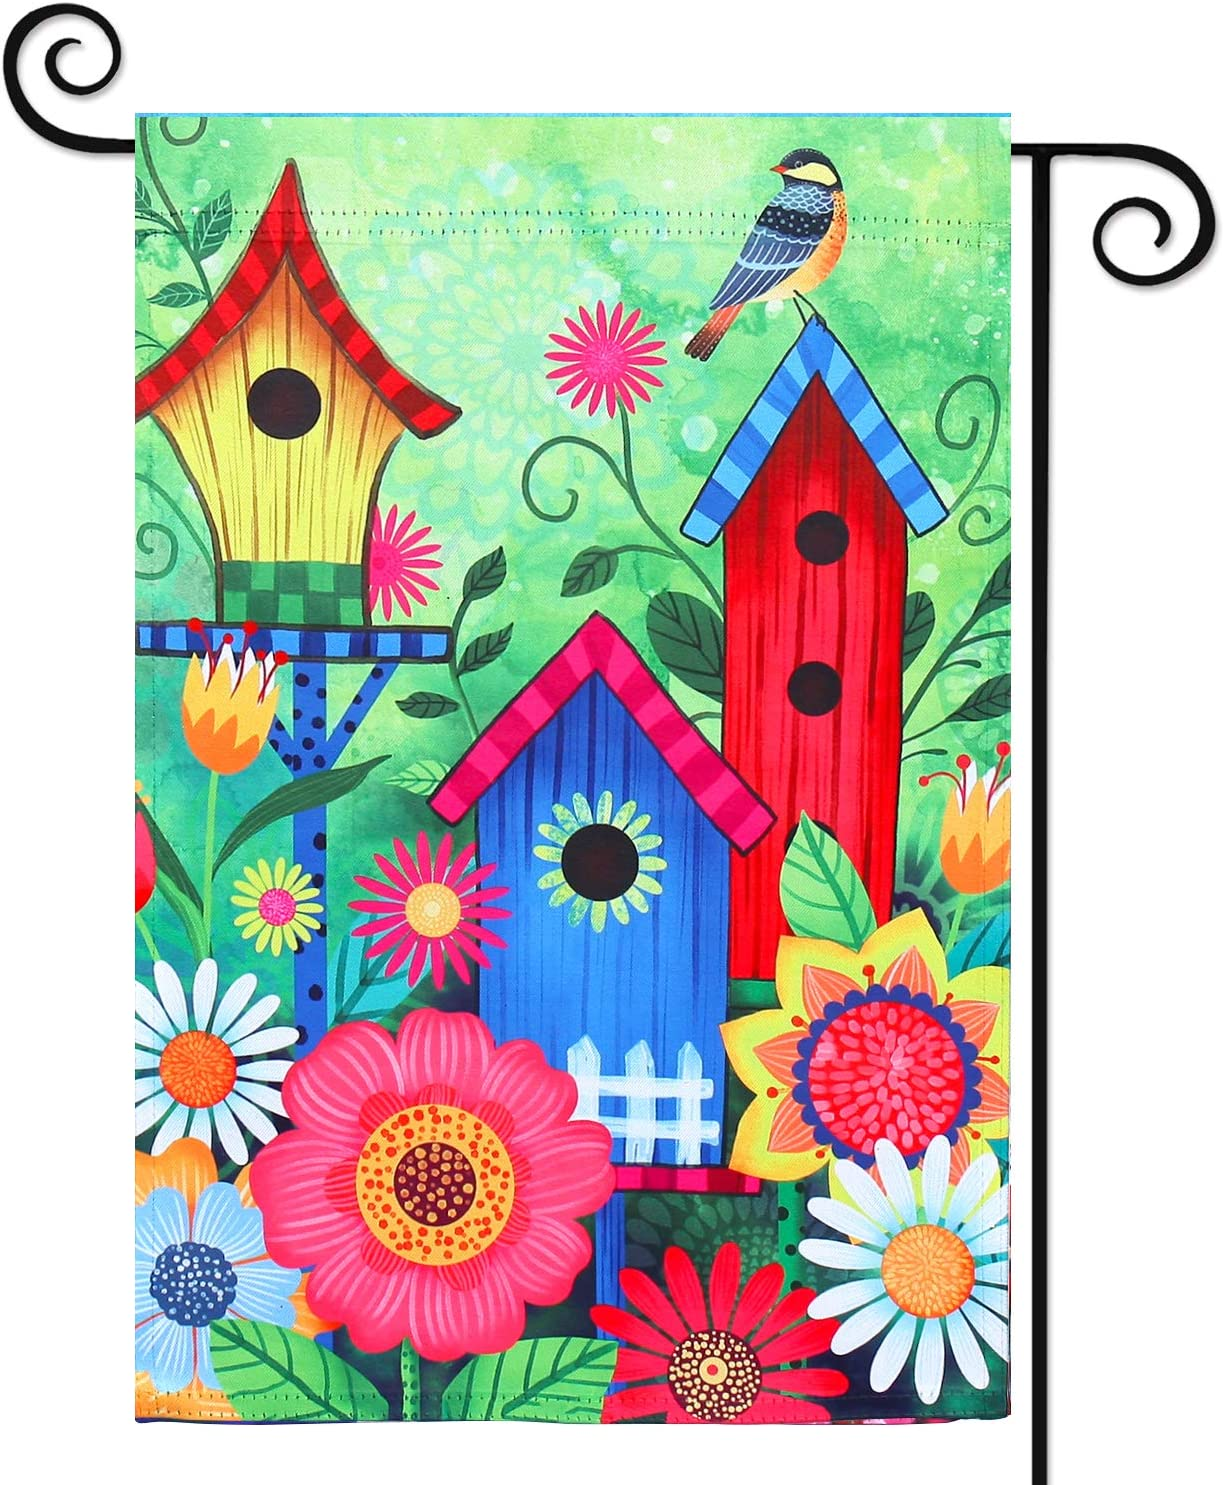 COCJCJ Welcome Bird cage Outdoor Double-Sided Bird House Garden Flag 12X18, White Chrysanthemum, red Chrysanthemum, Small Daisy Home Decoration, Outdoor Lawn Home Decoration.